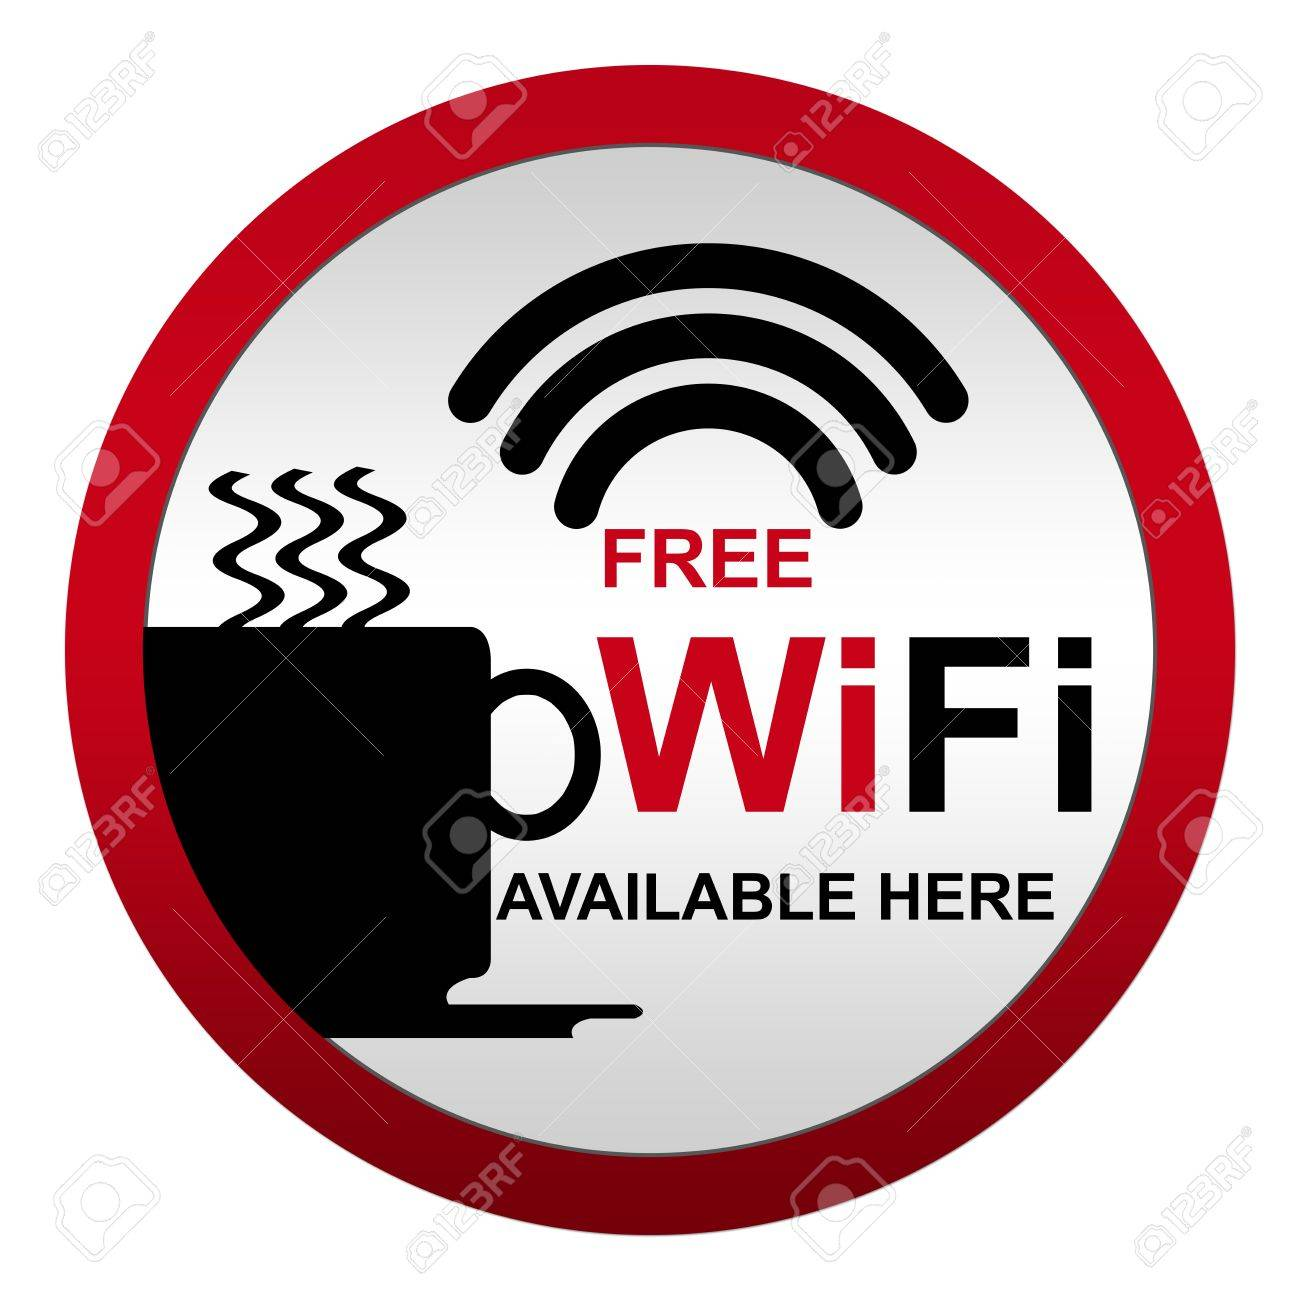 Free WiFi Available Here With Coffee Cup Icon in Circle Metal Style Icon Isolate on White Background Stock Photo - 14687002